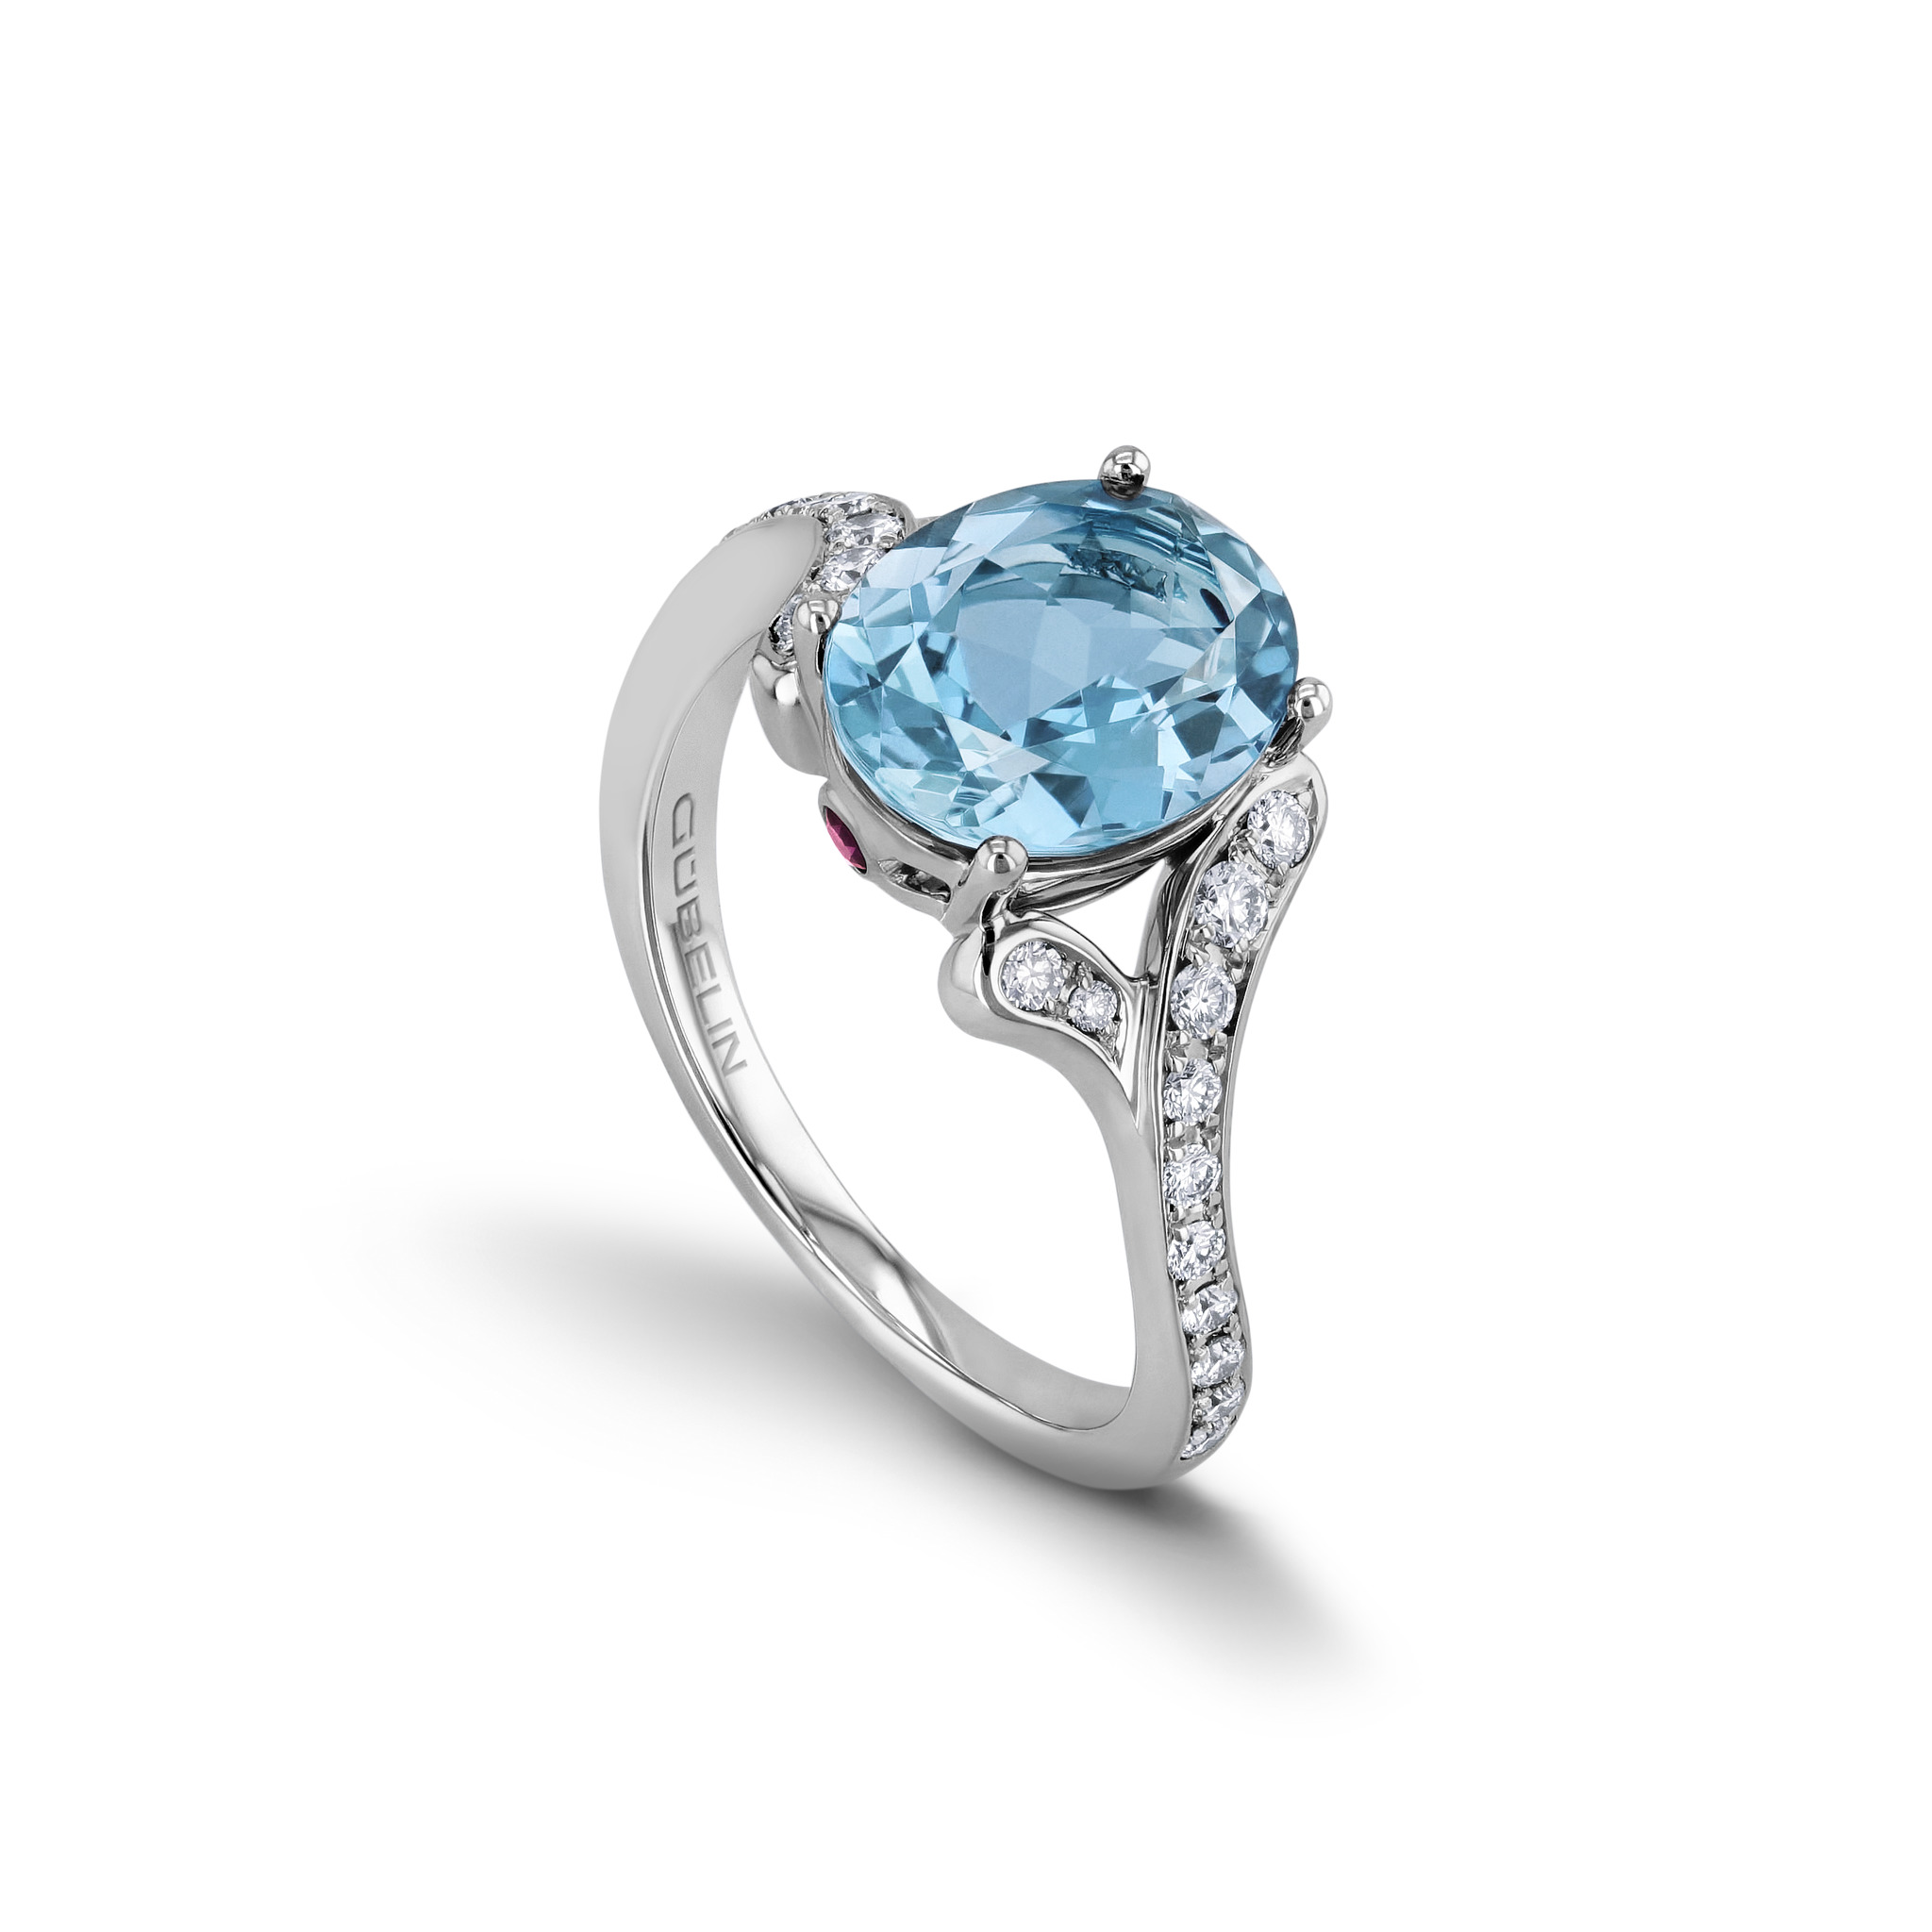 Ring with aquamarine